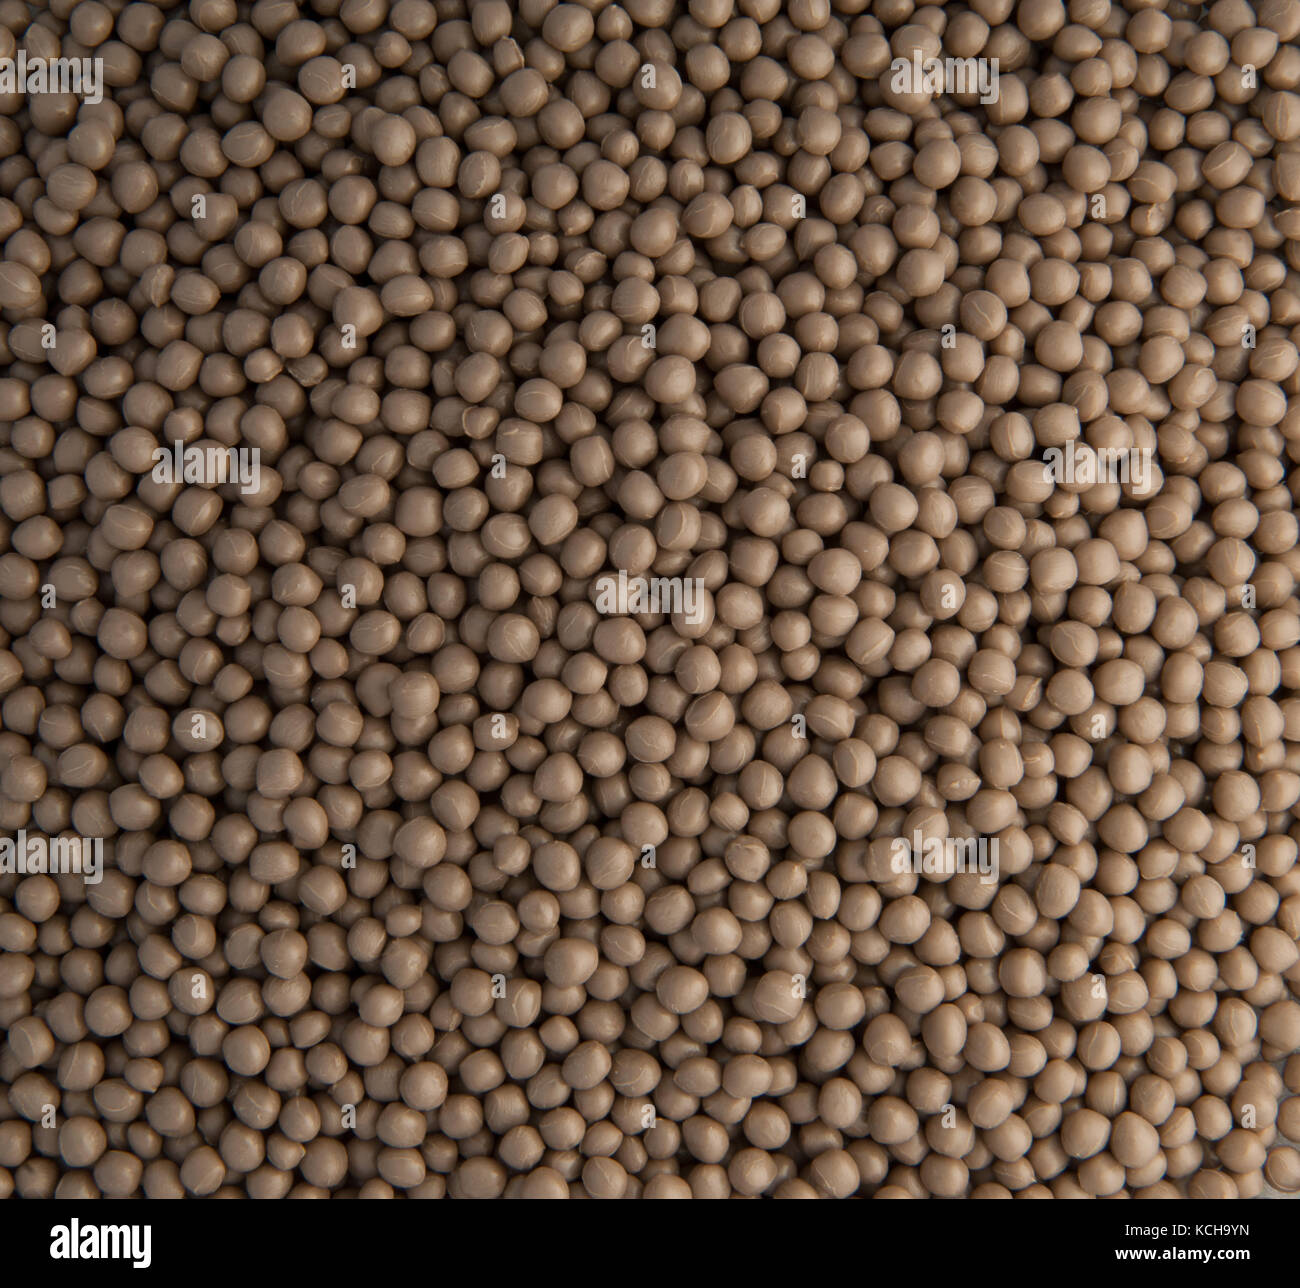 background of small plastic pellets brown colored - Stock Image